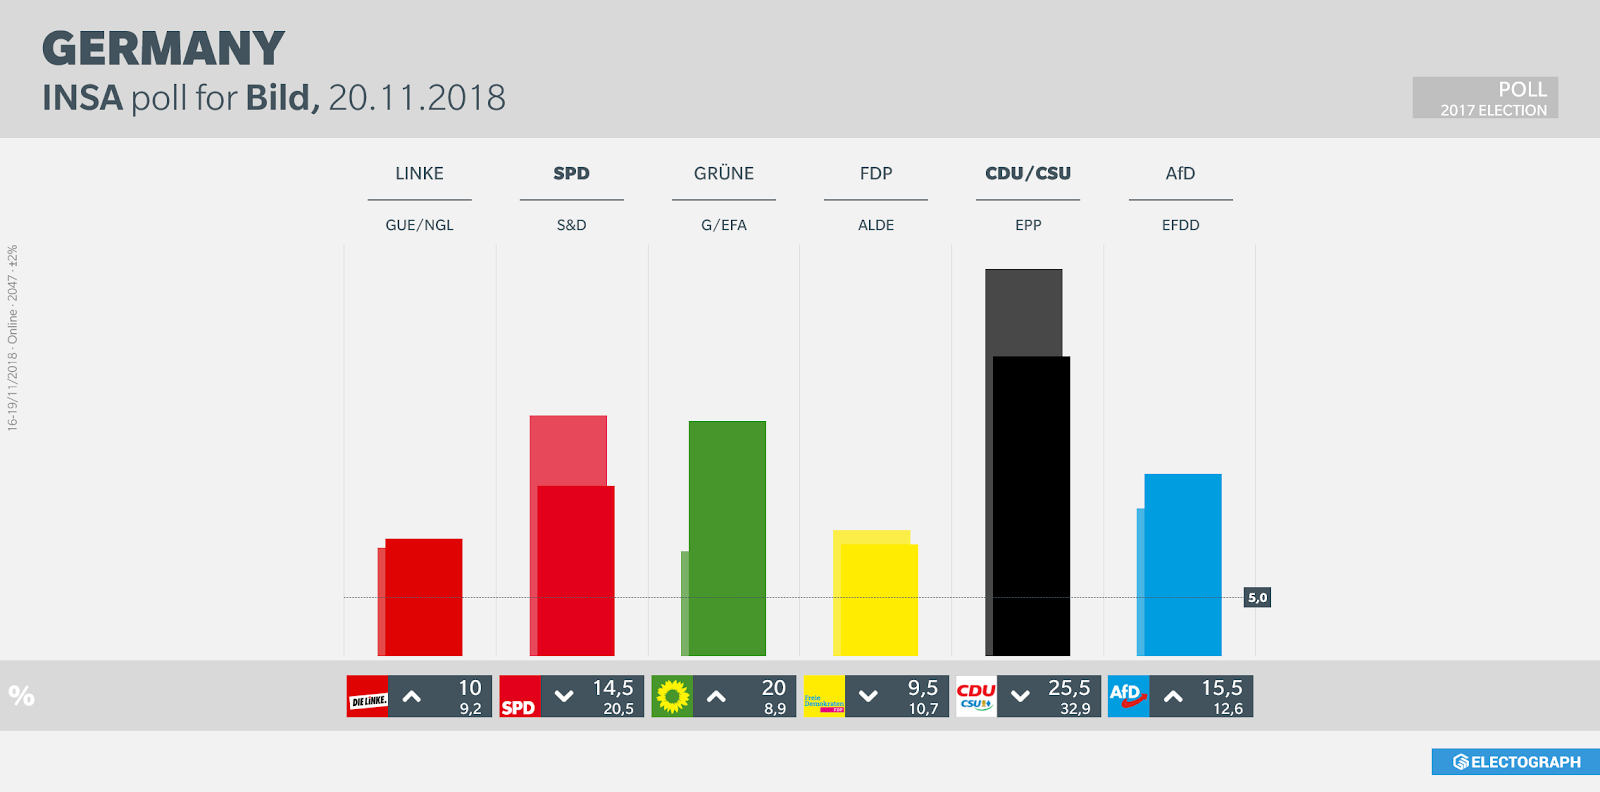 GERMANY: INSA poll chart for Bild, 20 November 2018